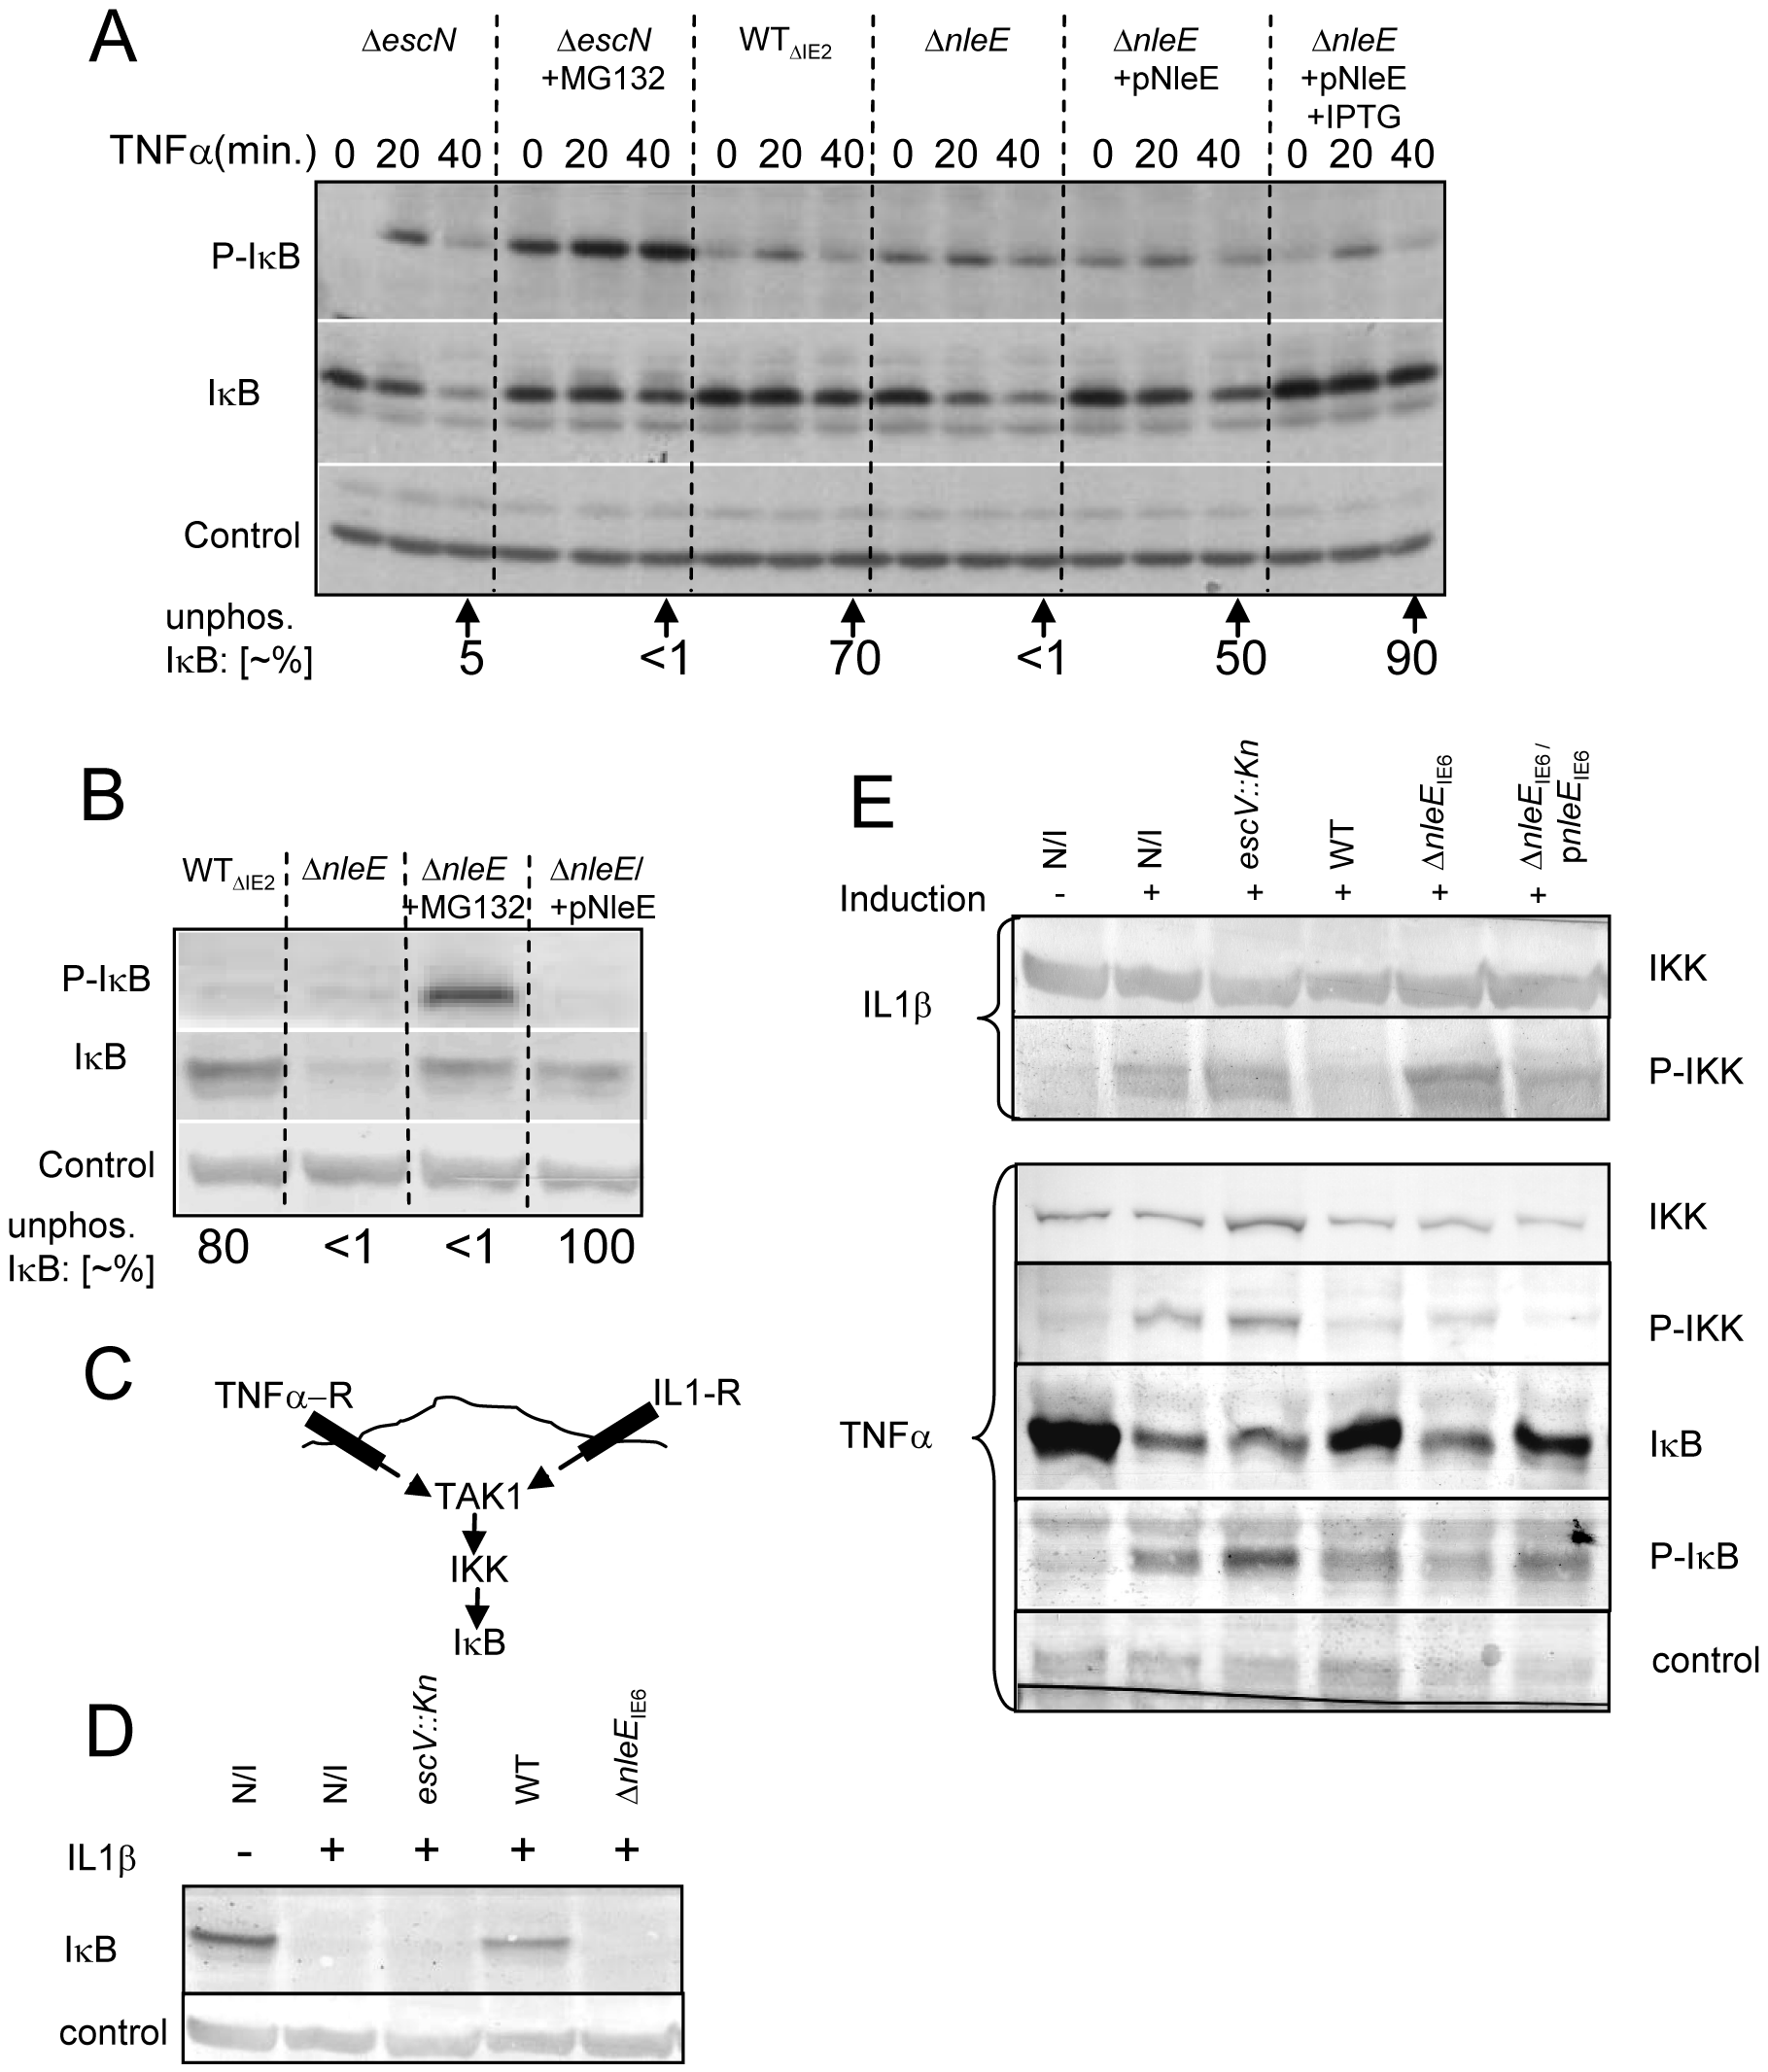 NleE inhibits IκB and IKKβ phosphorylation.